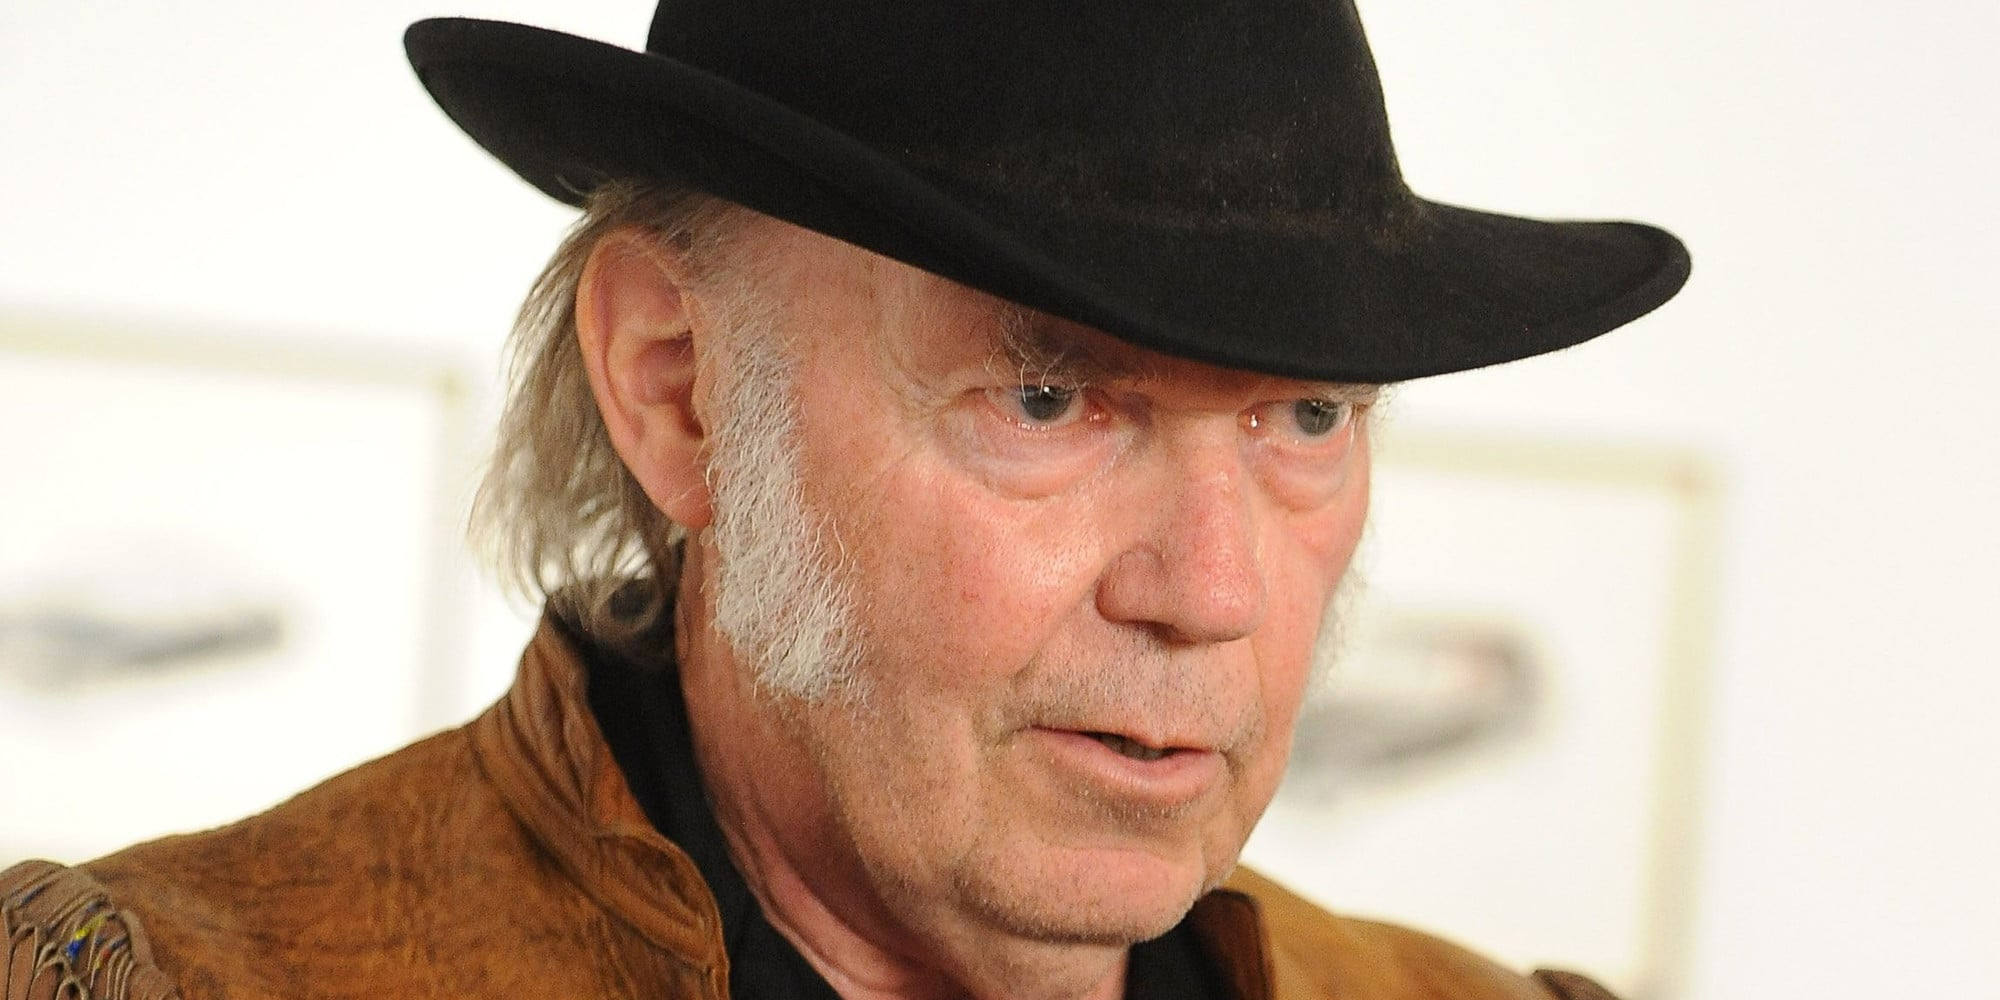 PARADOX FROM NEIL YOUNG + PROMISE OF THE REAL